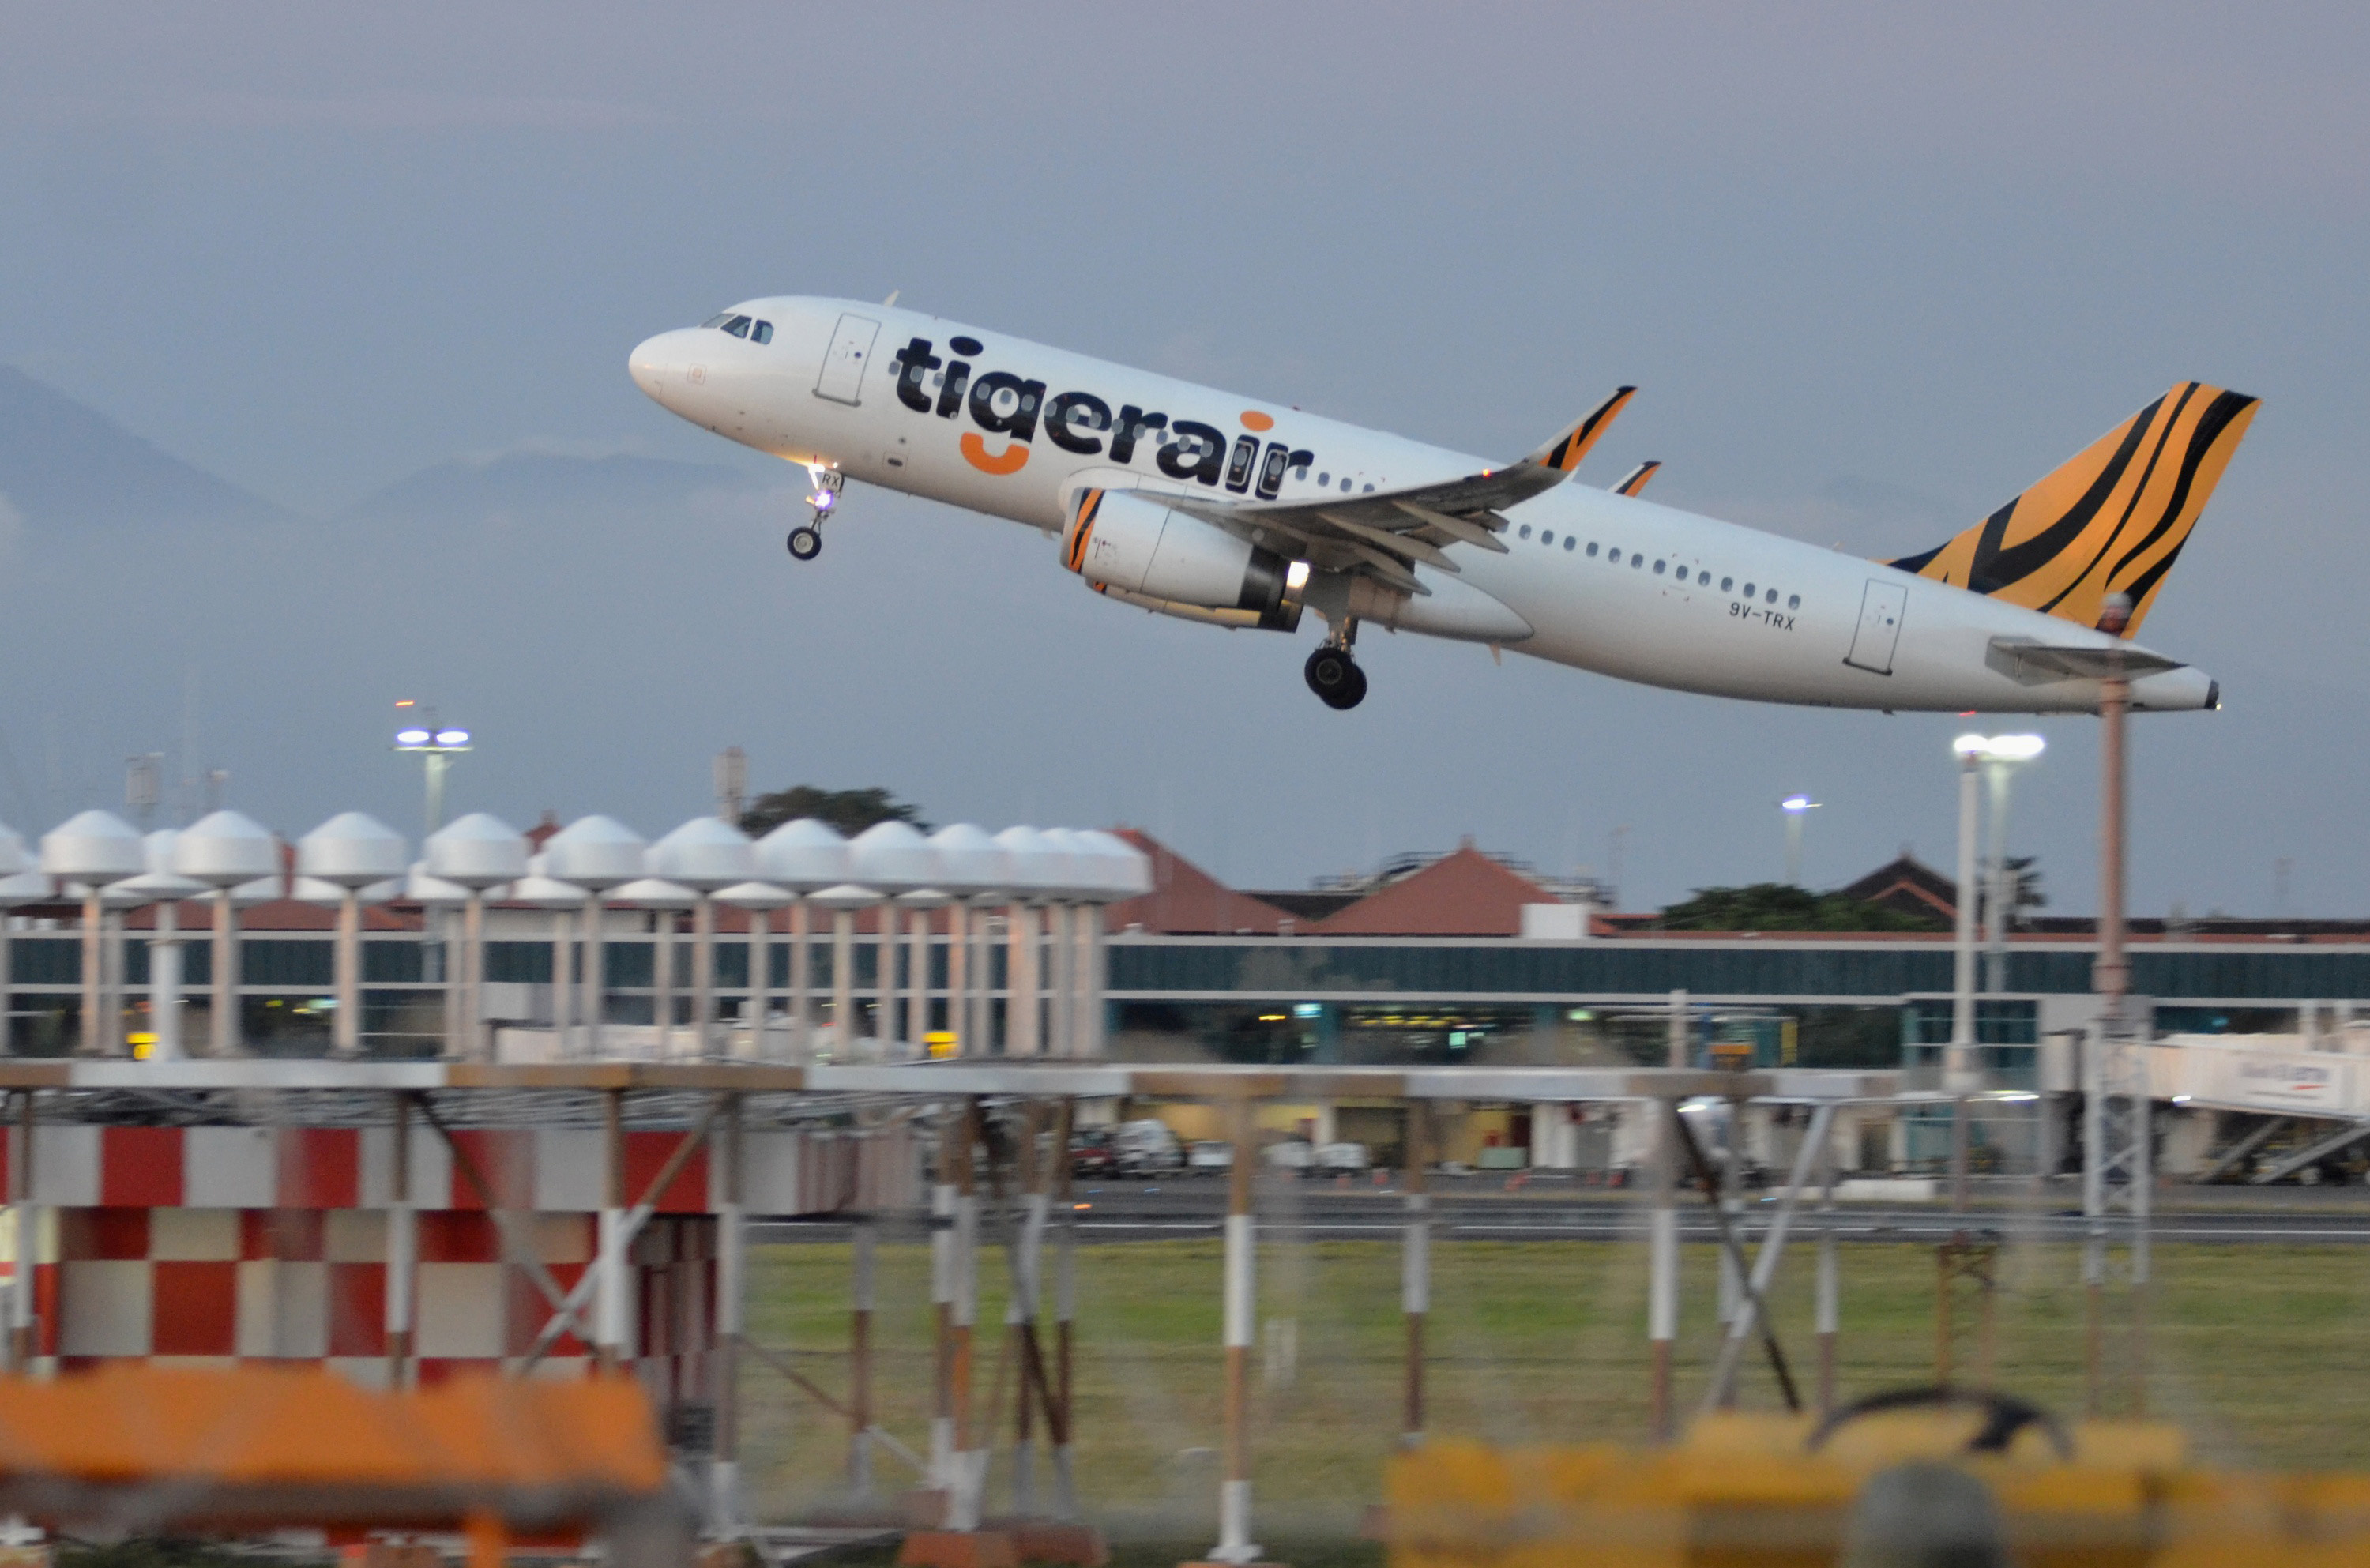 Tigerair has yet to reveal when it will be able to resume flights in and out of